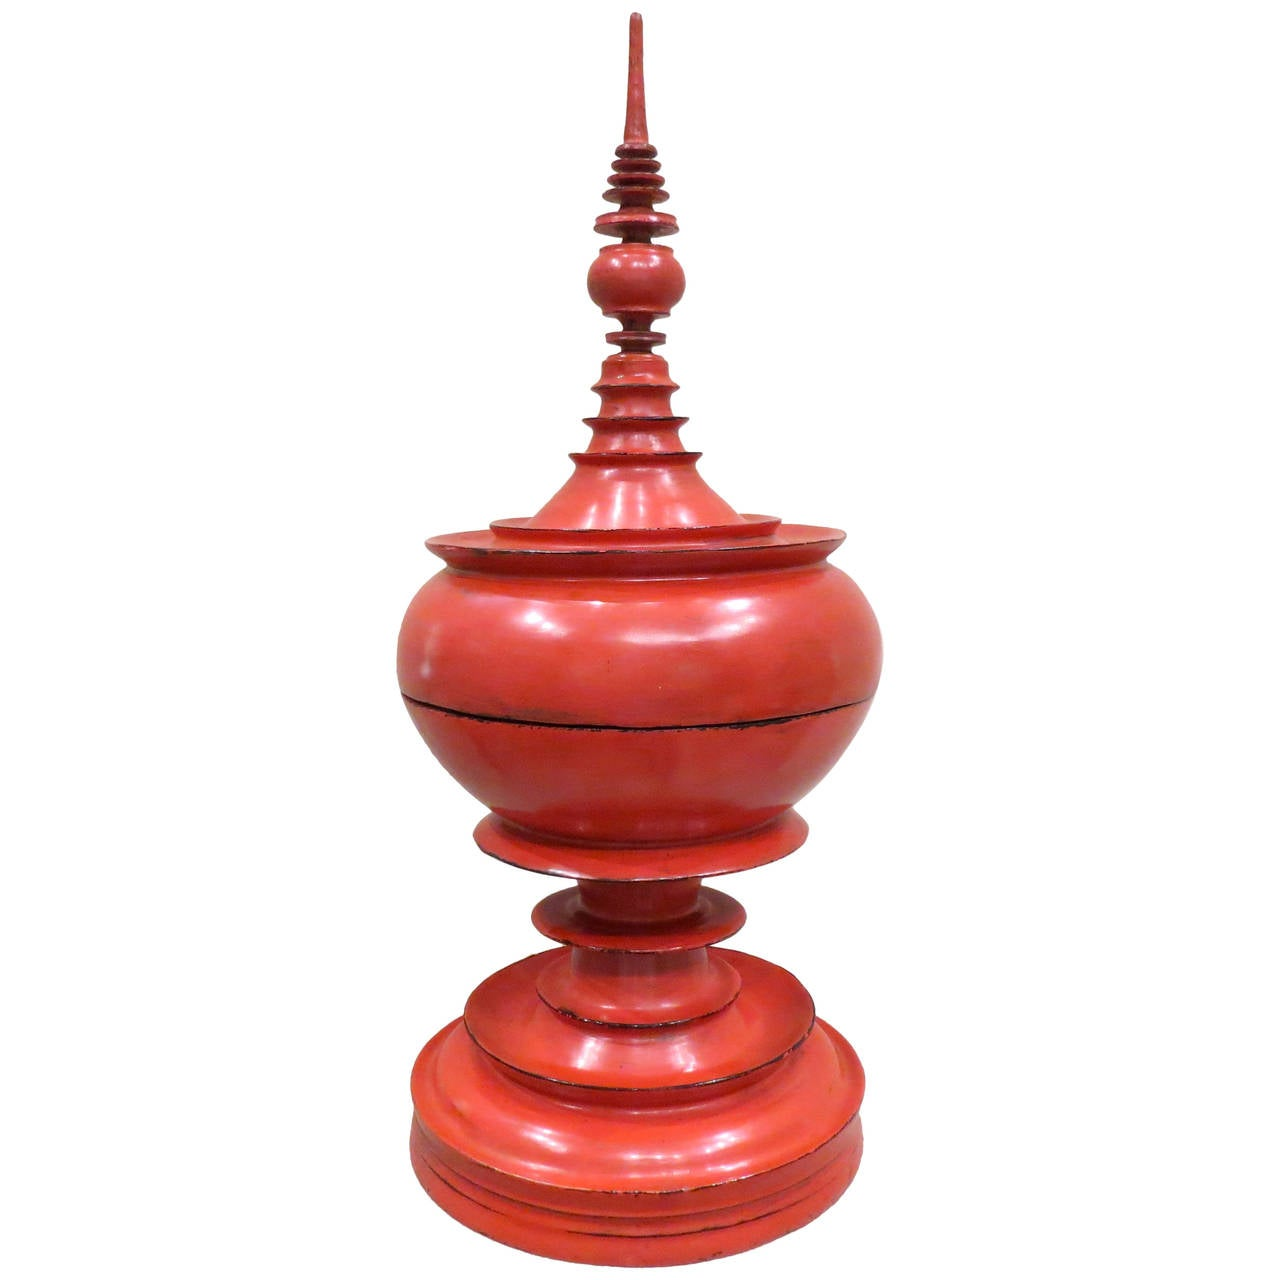 "Late 19th Century Burmese Red Lacquer Offering Vessel ""Hsunok"""